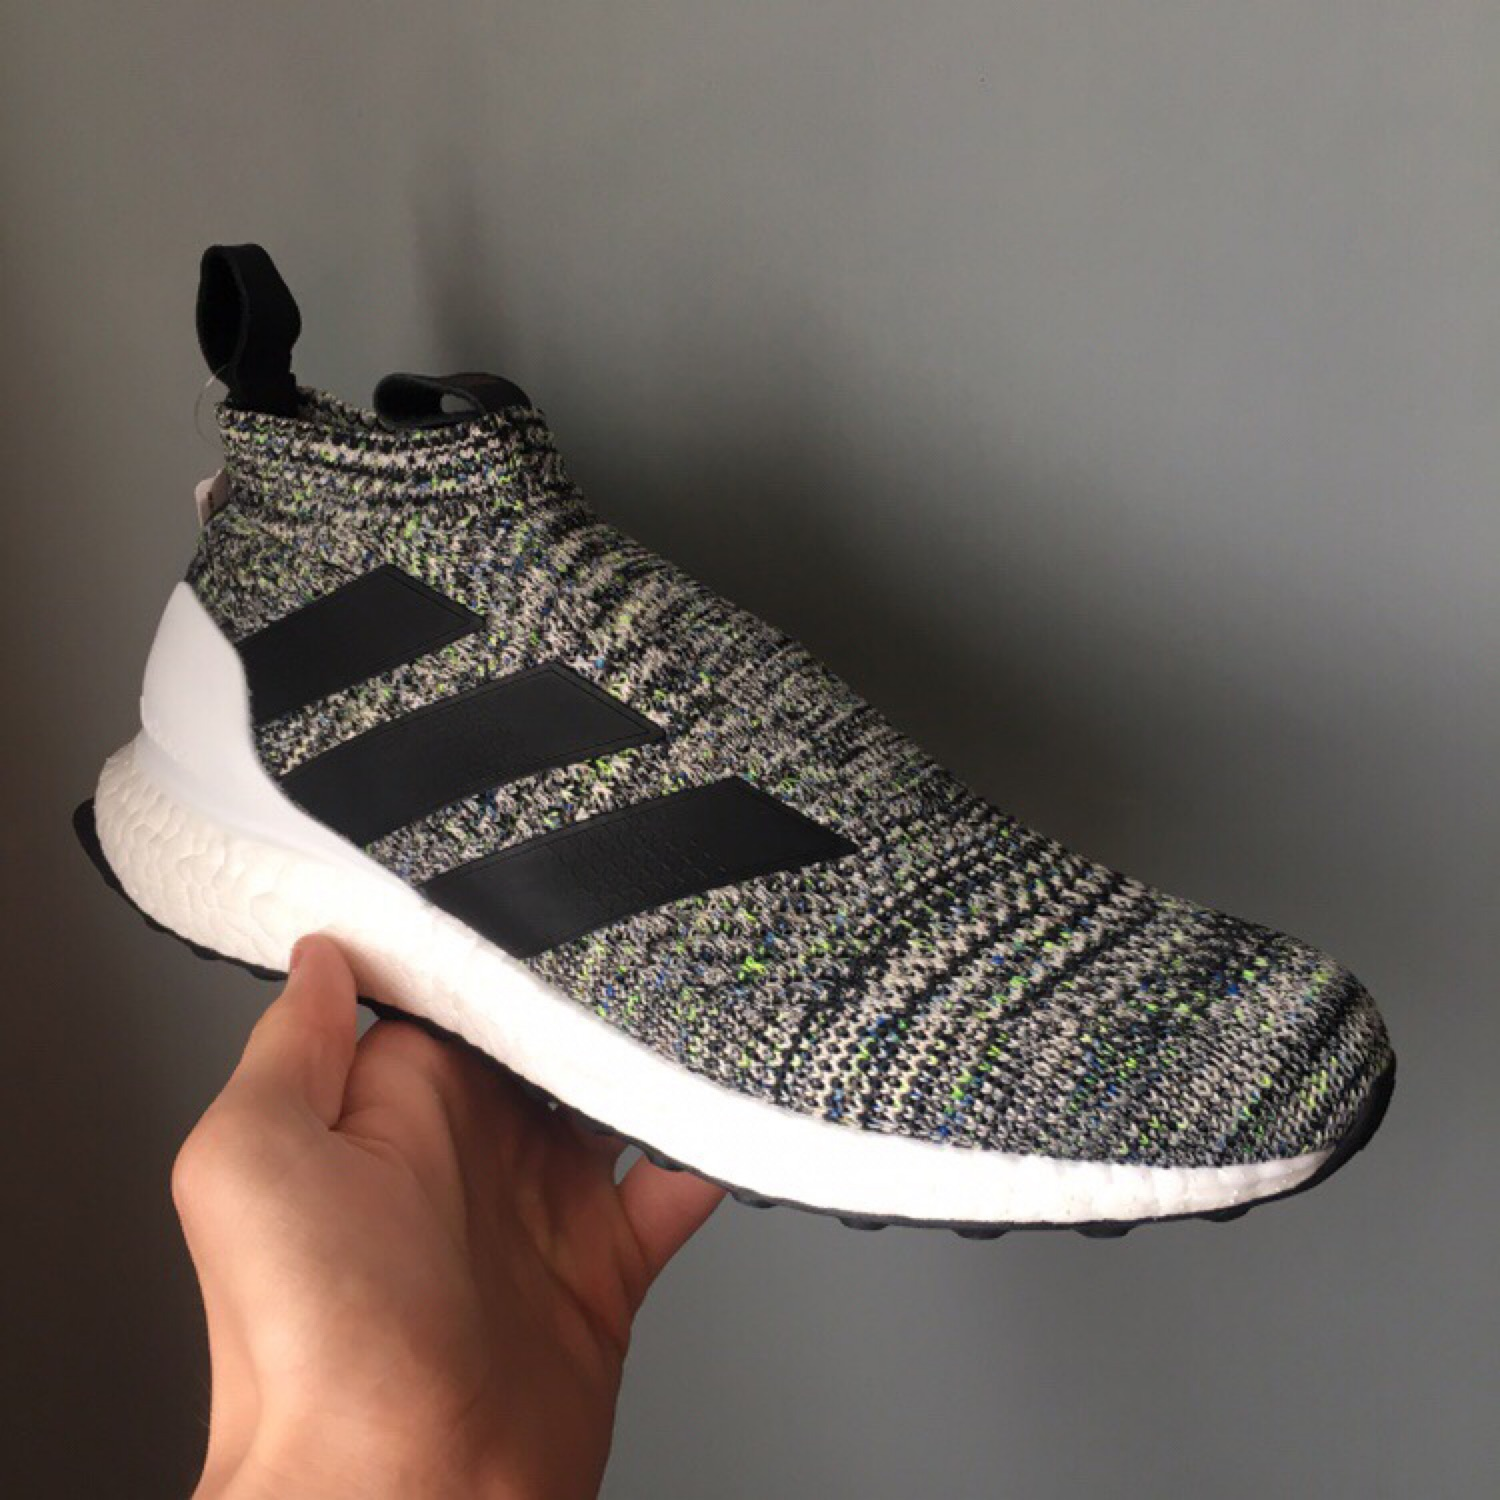 reputable site d776f 415a5 Adidas Ace 16+ Ultraboost Uk8.5